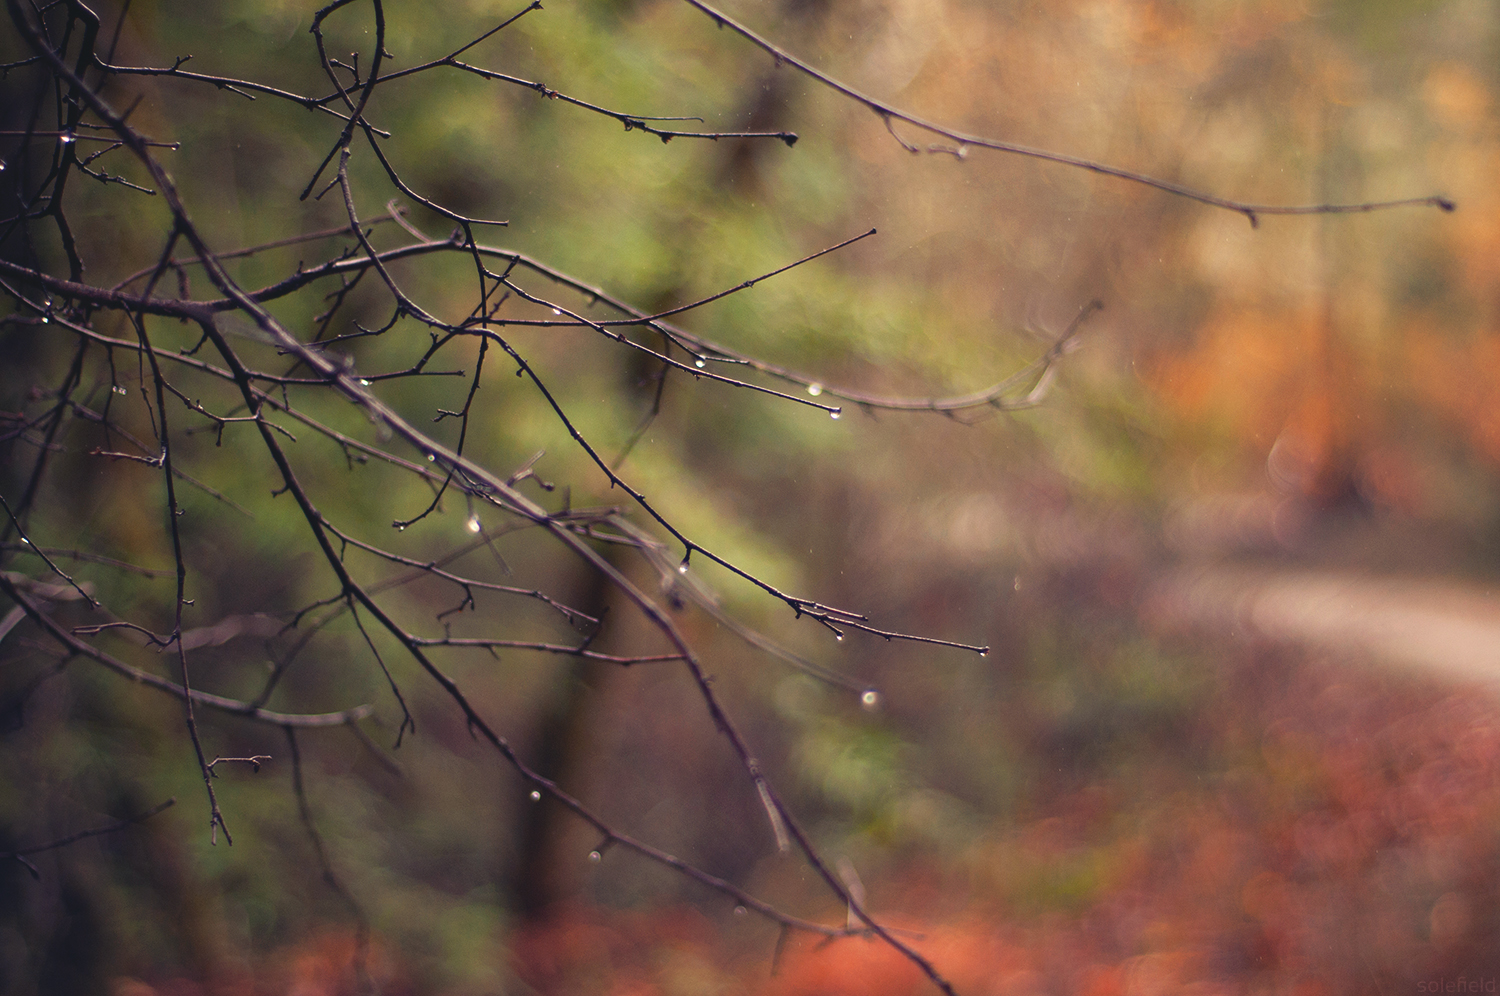 Droplets on a bare branch